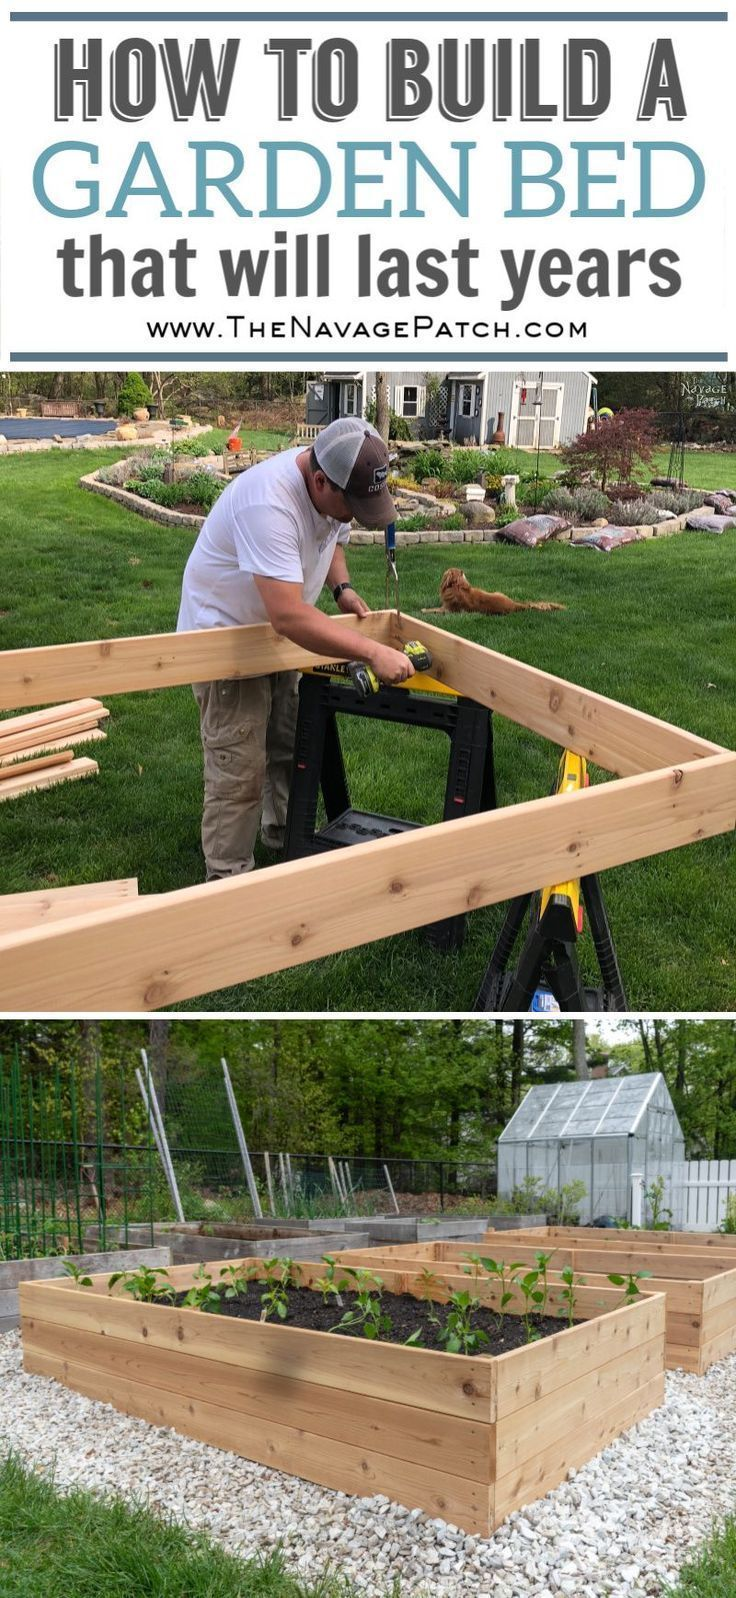 How to Build a Raised Garden Bed - The Navage Patch